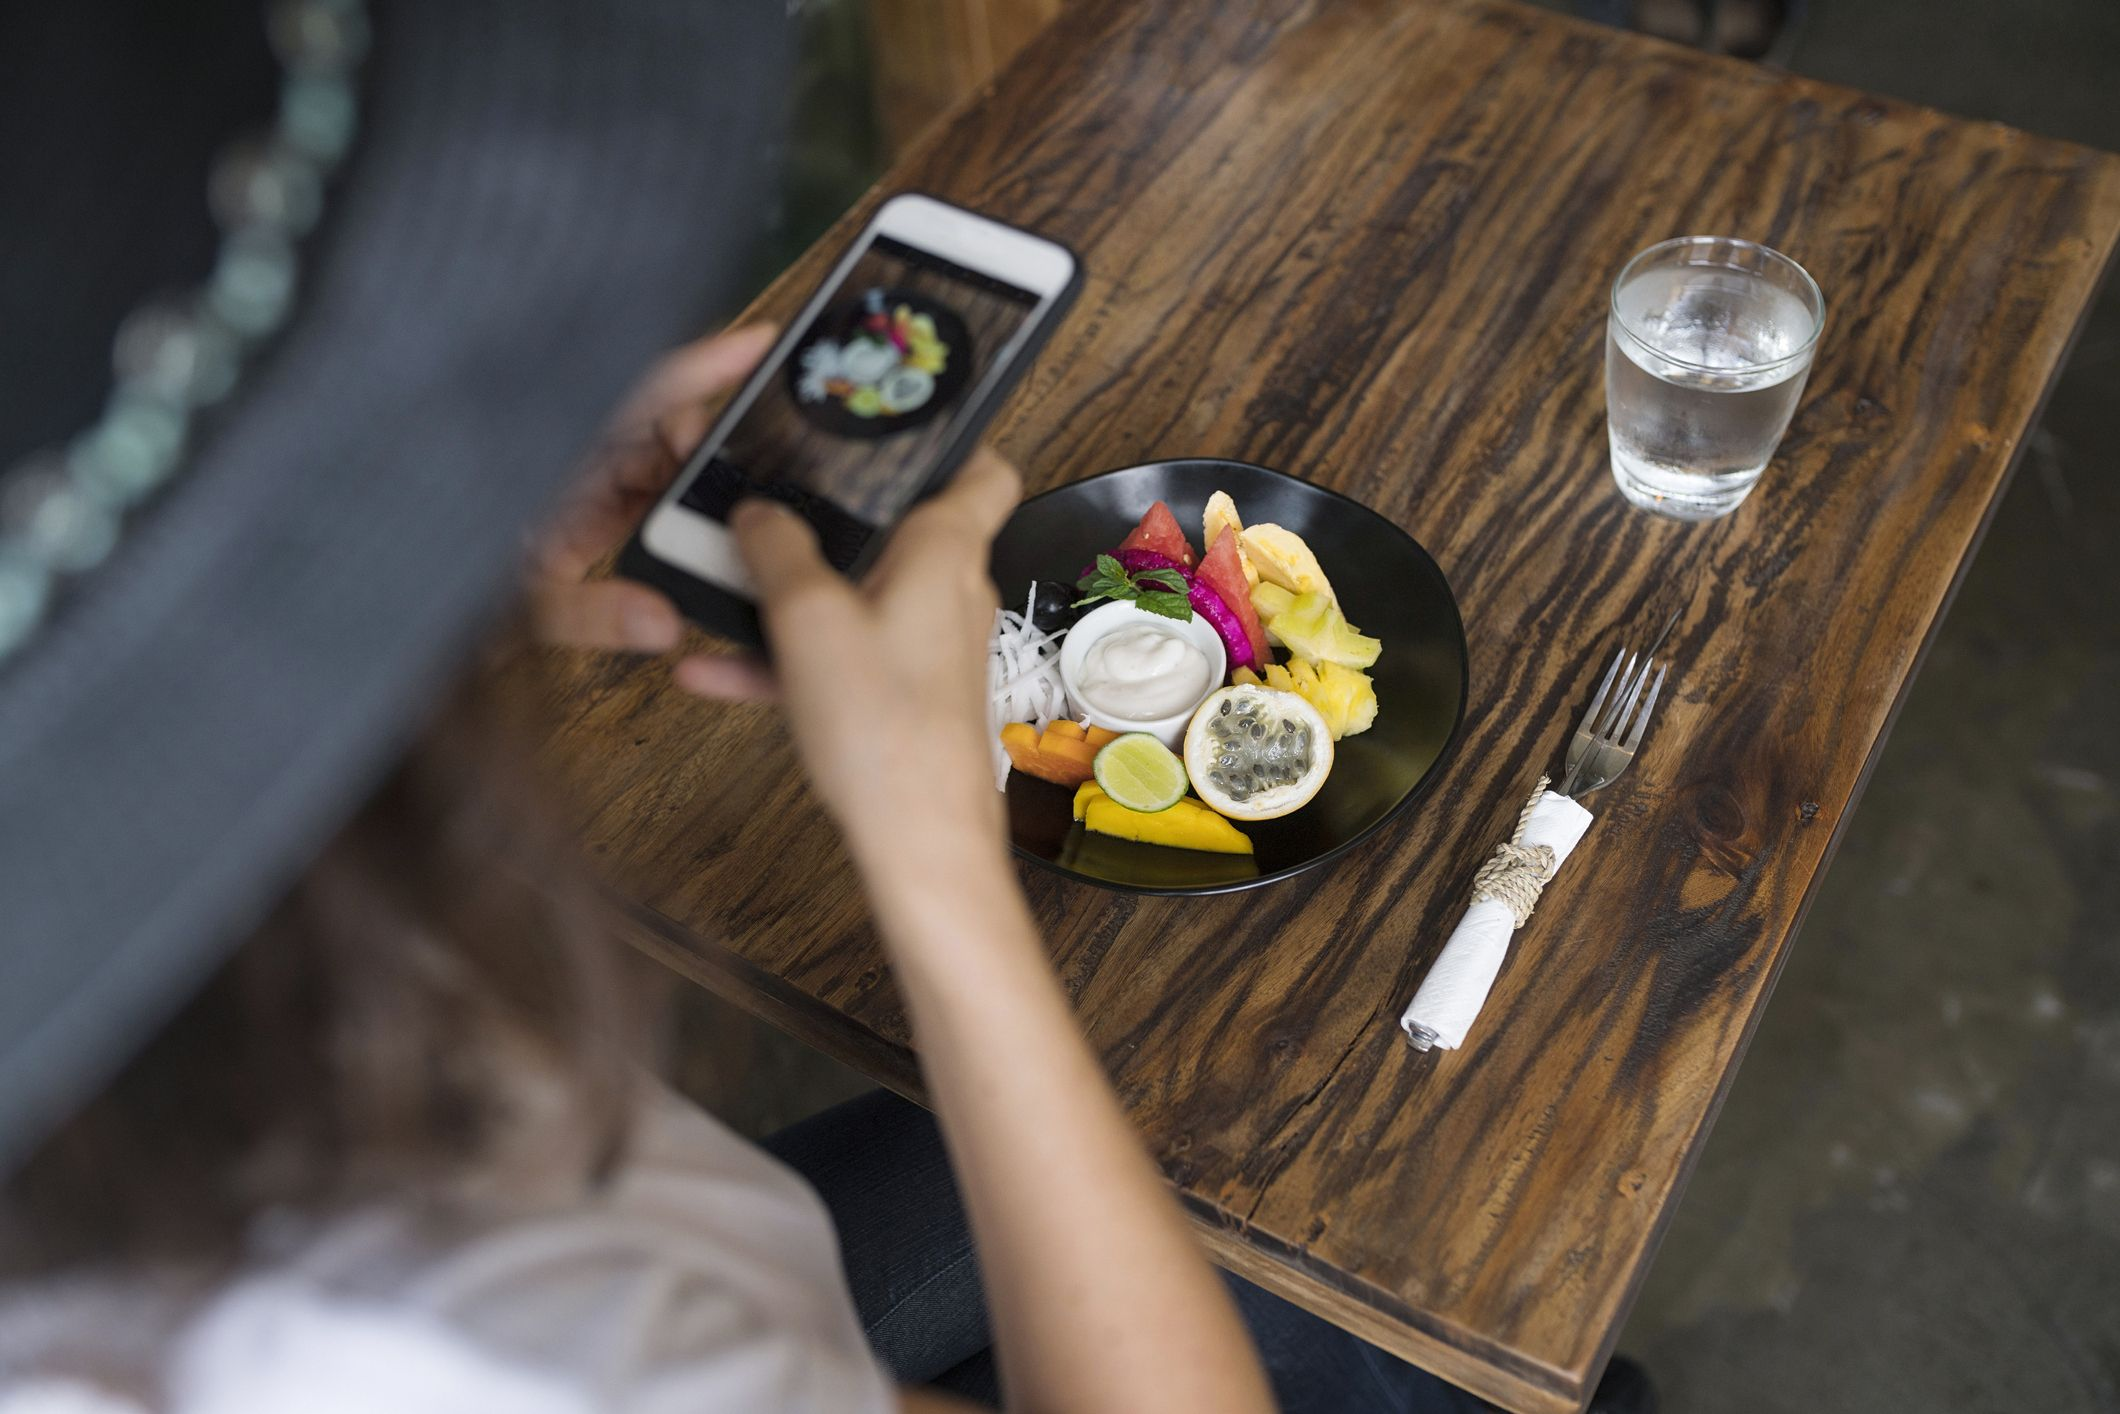 Woman taking a picture of food on a plate with smartphone